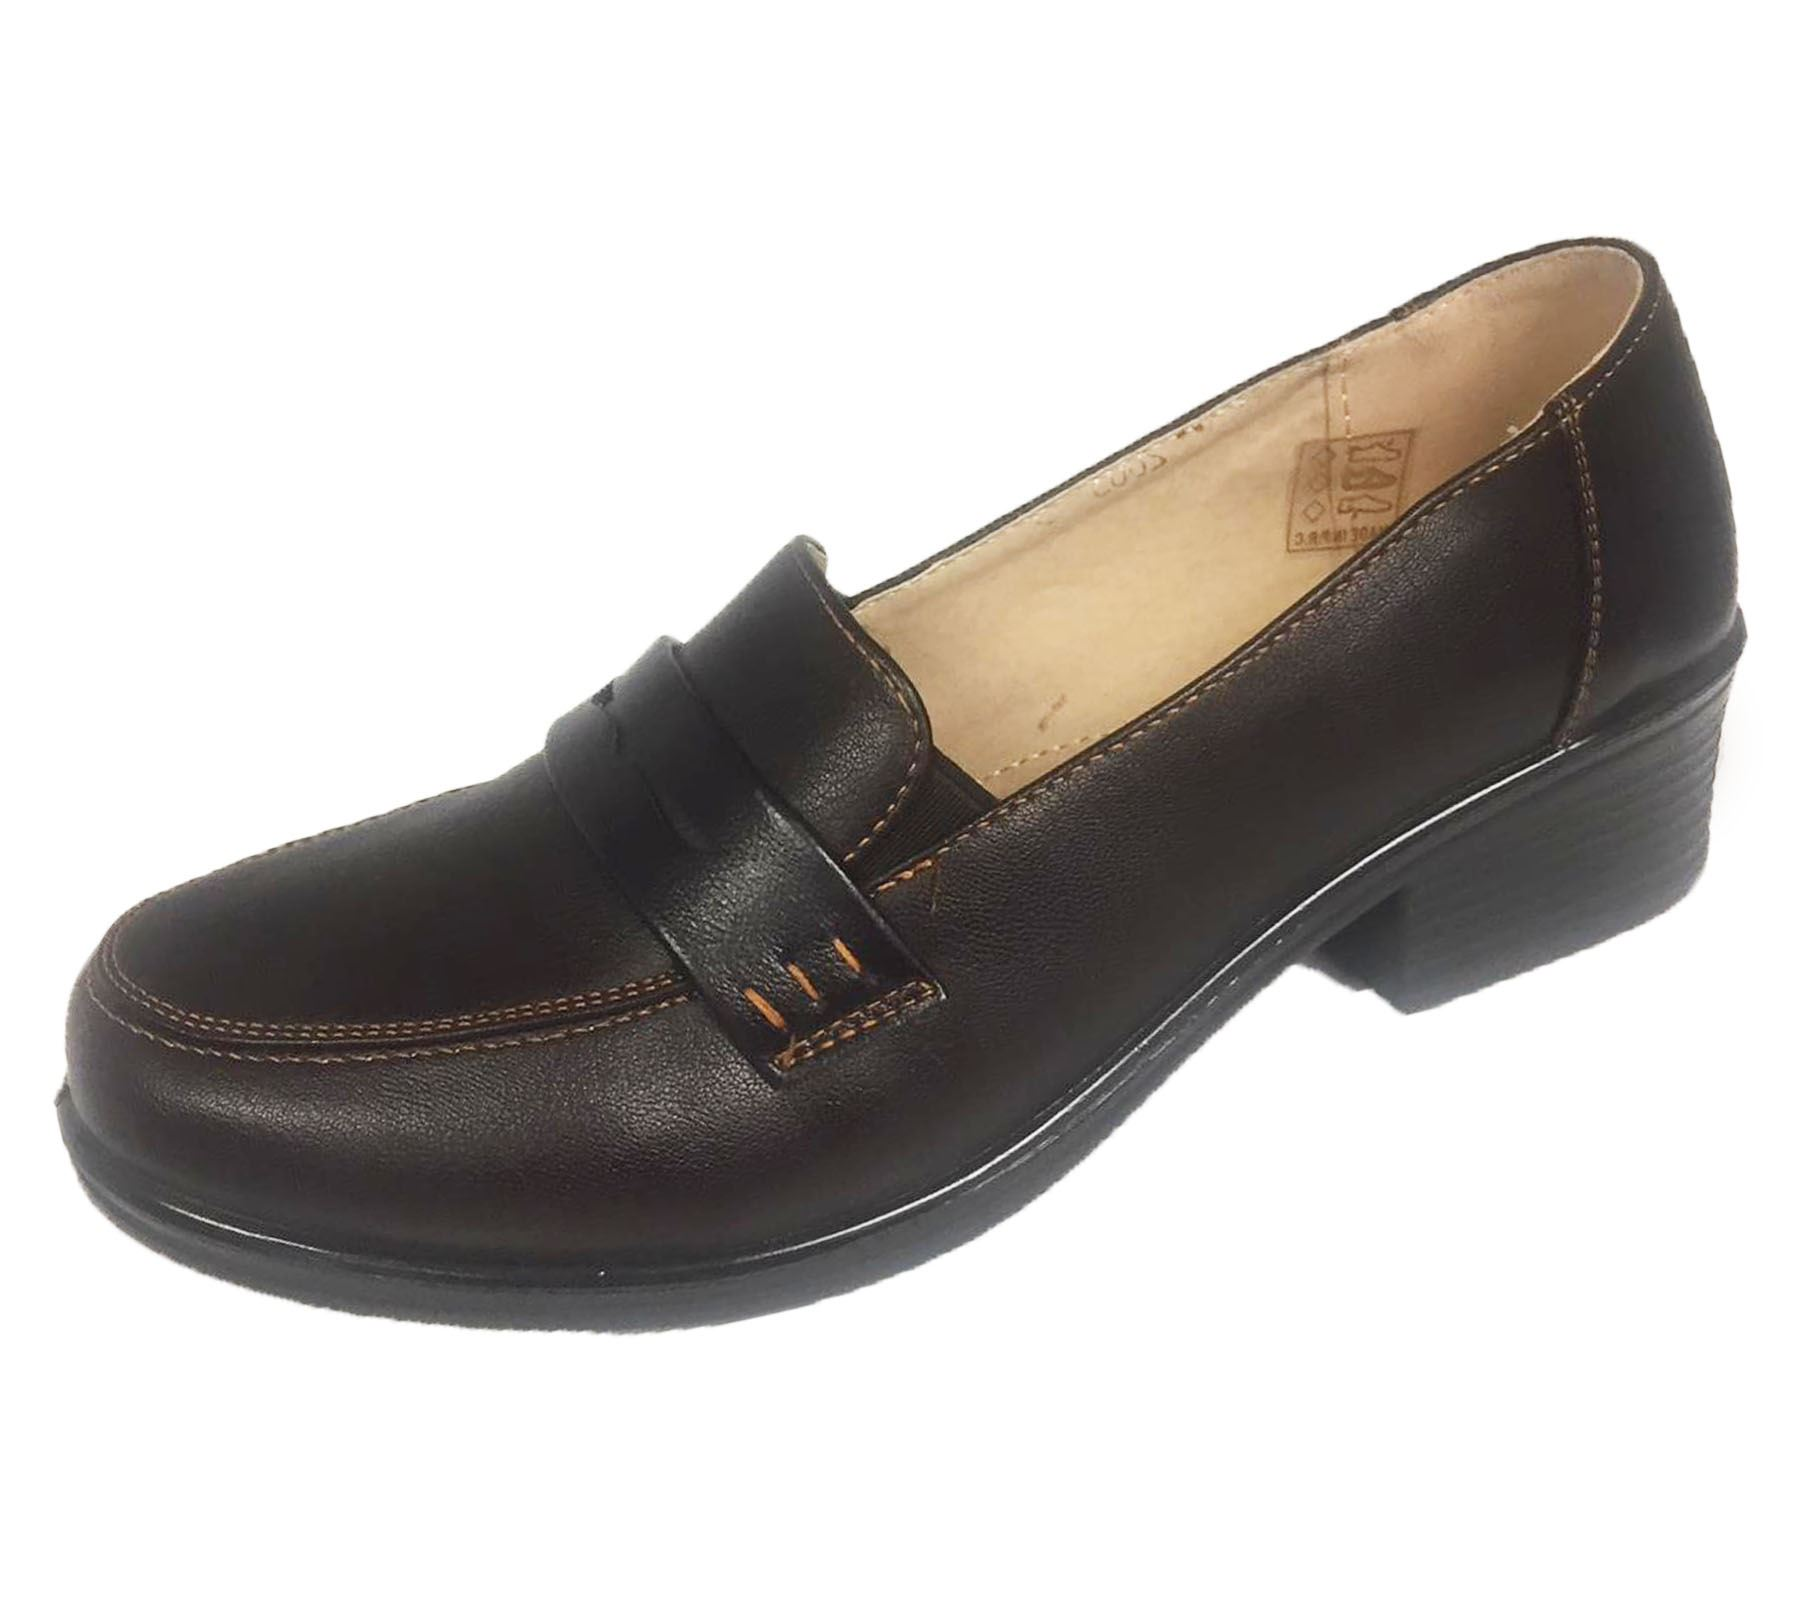 Easy Slip On Leather Shoes Ladies